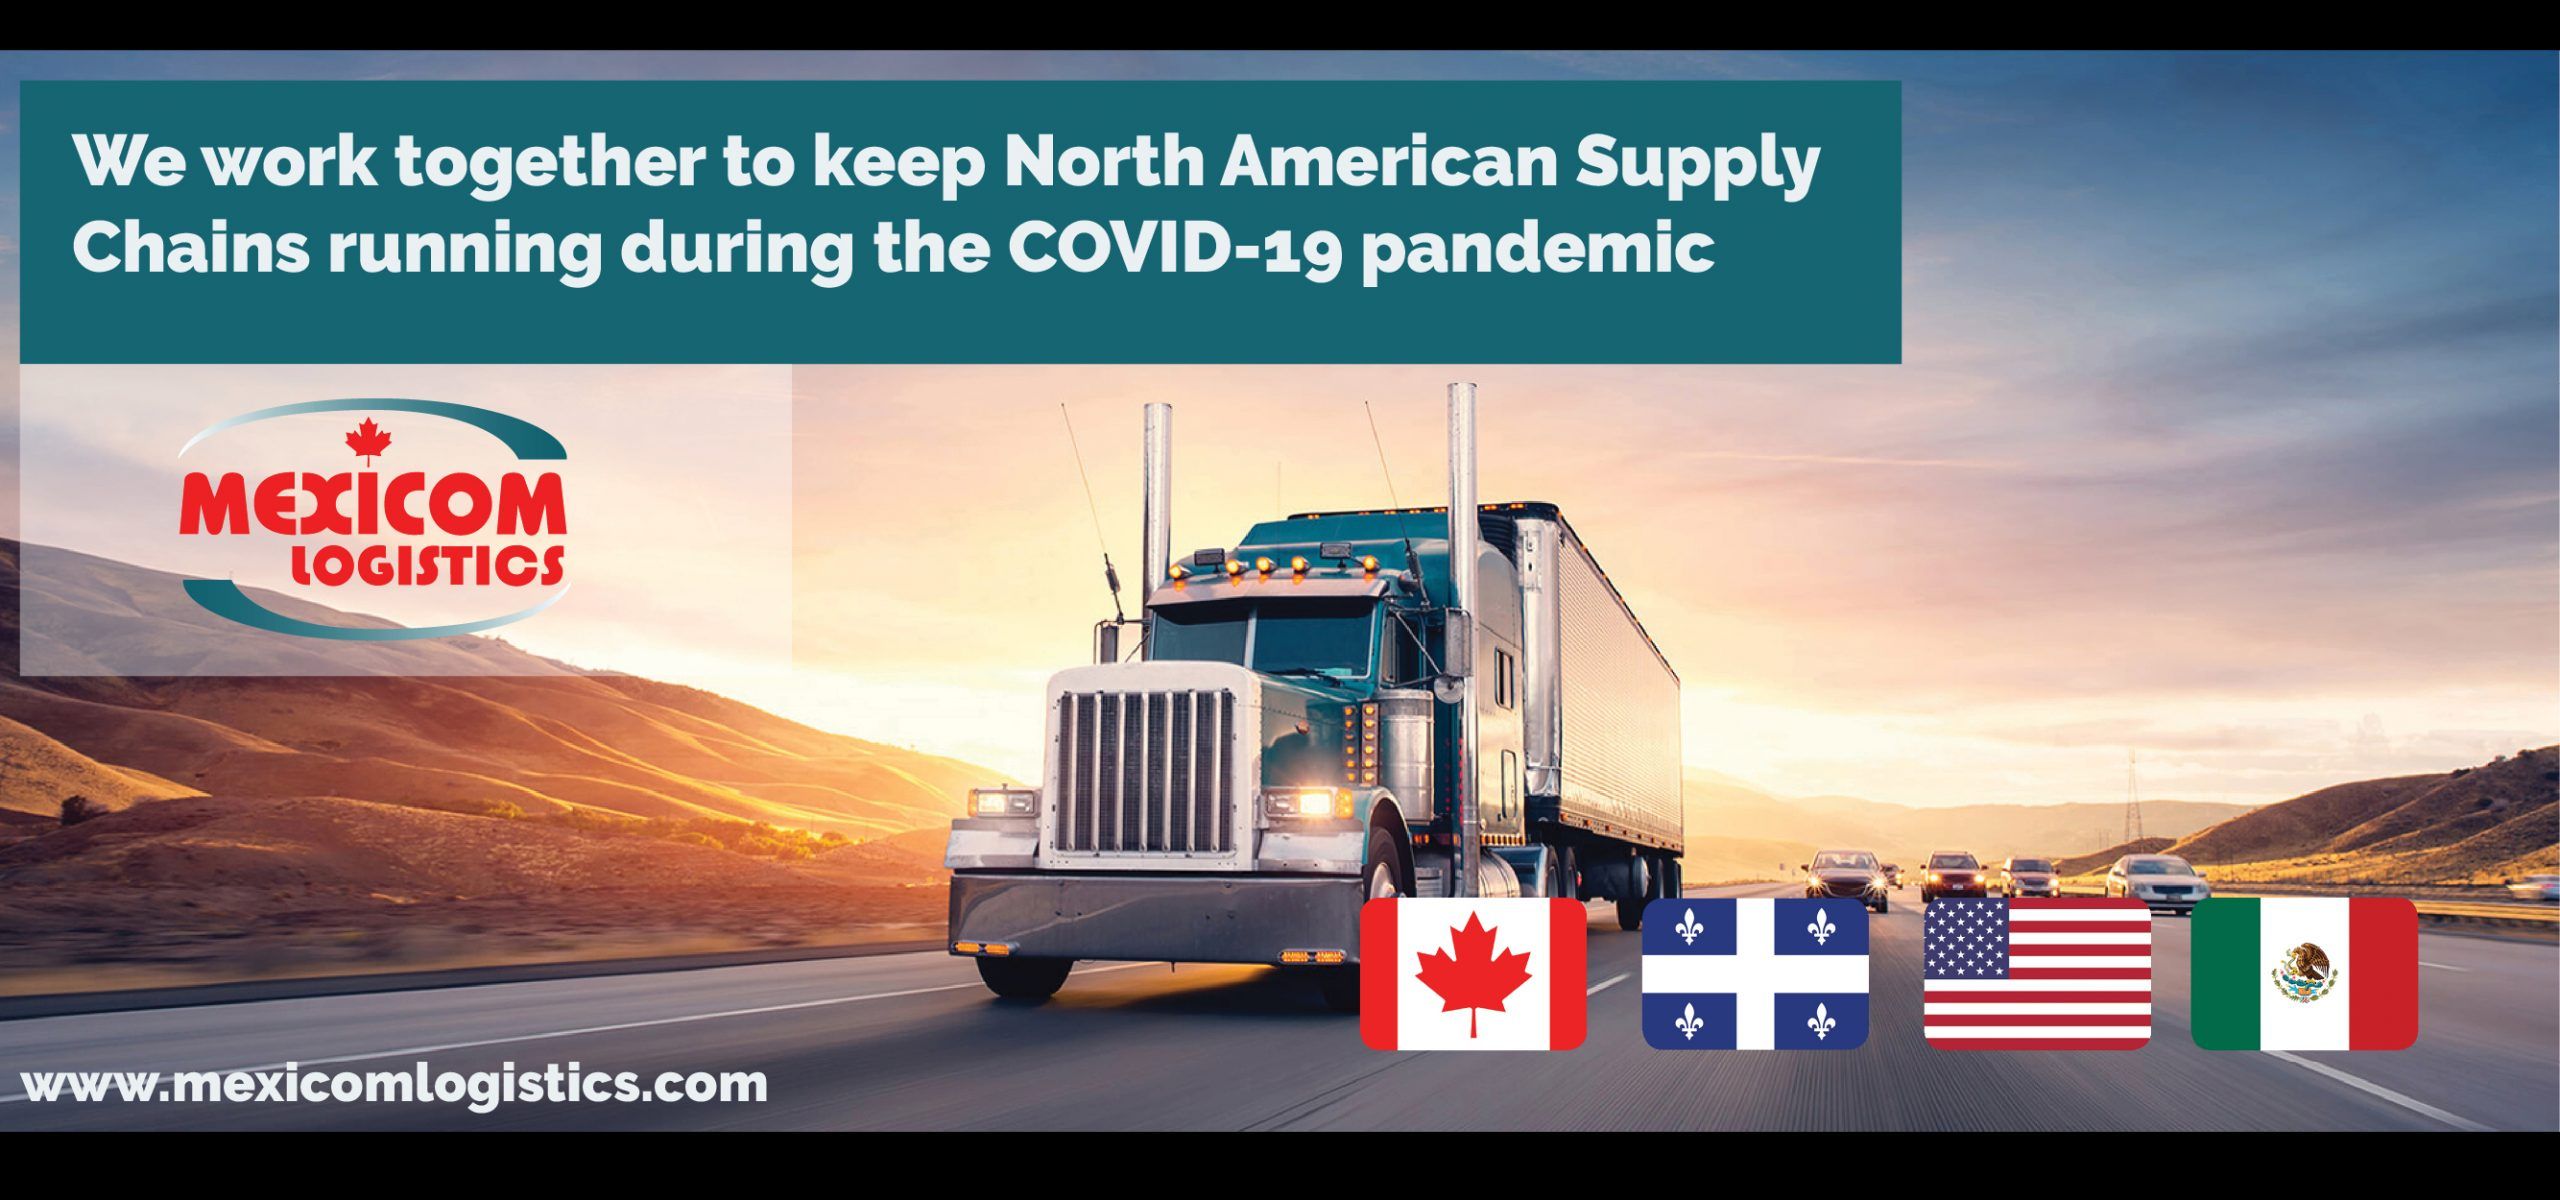 MexicomLogistics keeps working during COVID-19 pandemic